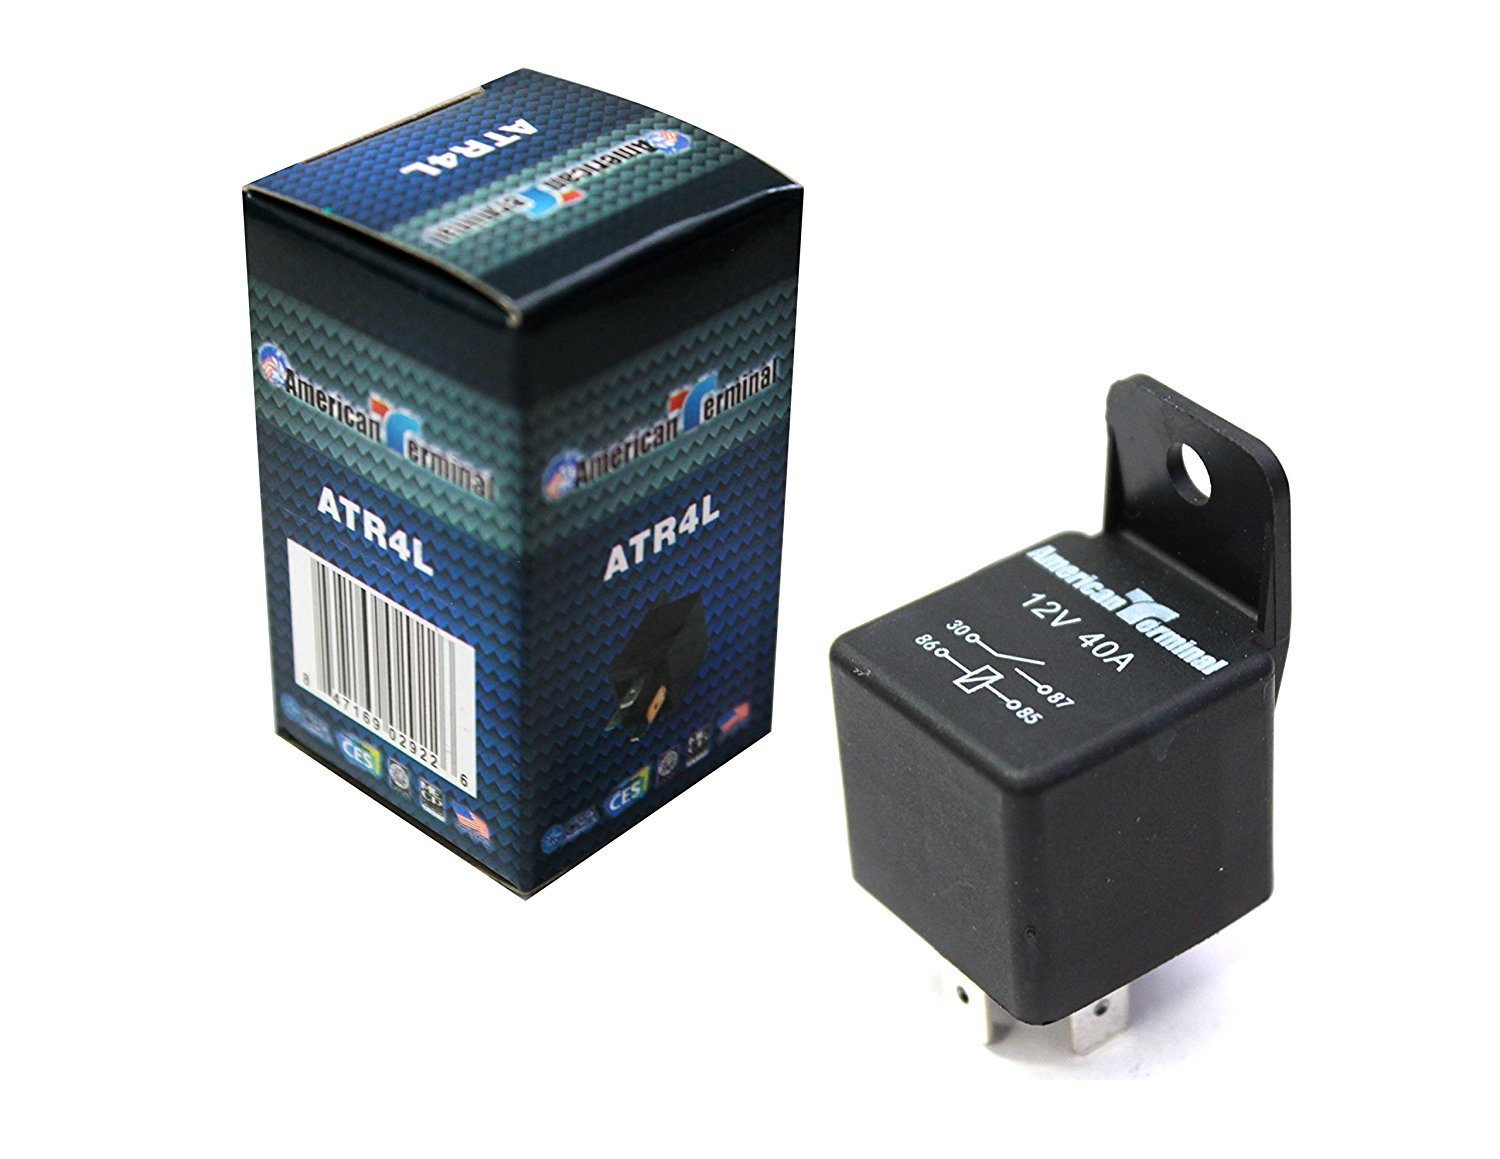 Cheap 60 13 Automotive Relay Find Deals On 4 Pin Get Quotations American Terminal Atr4l 12 Vcd Spdt 40a